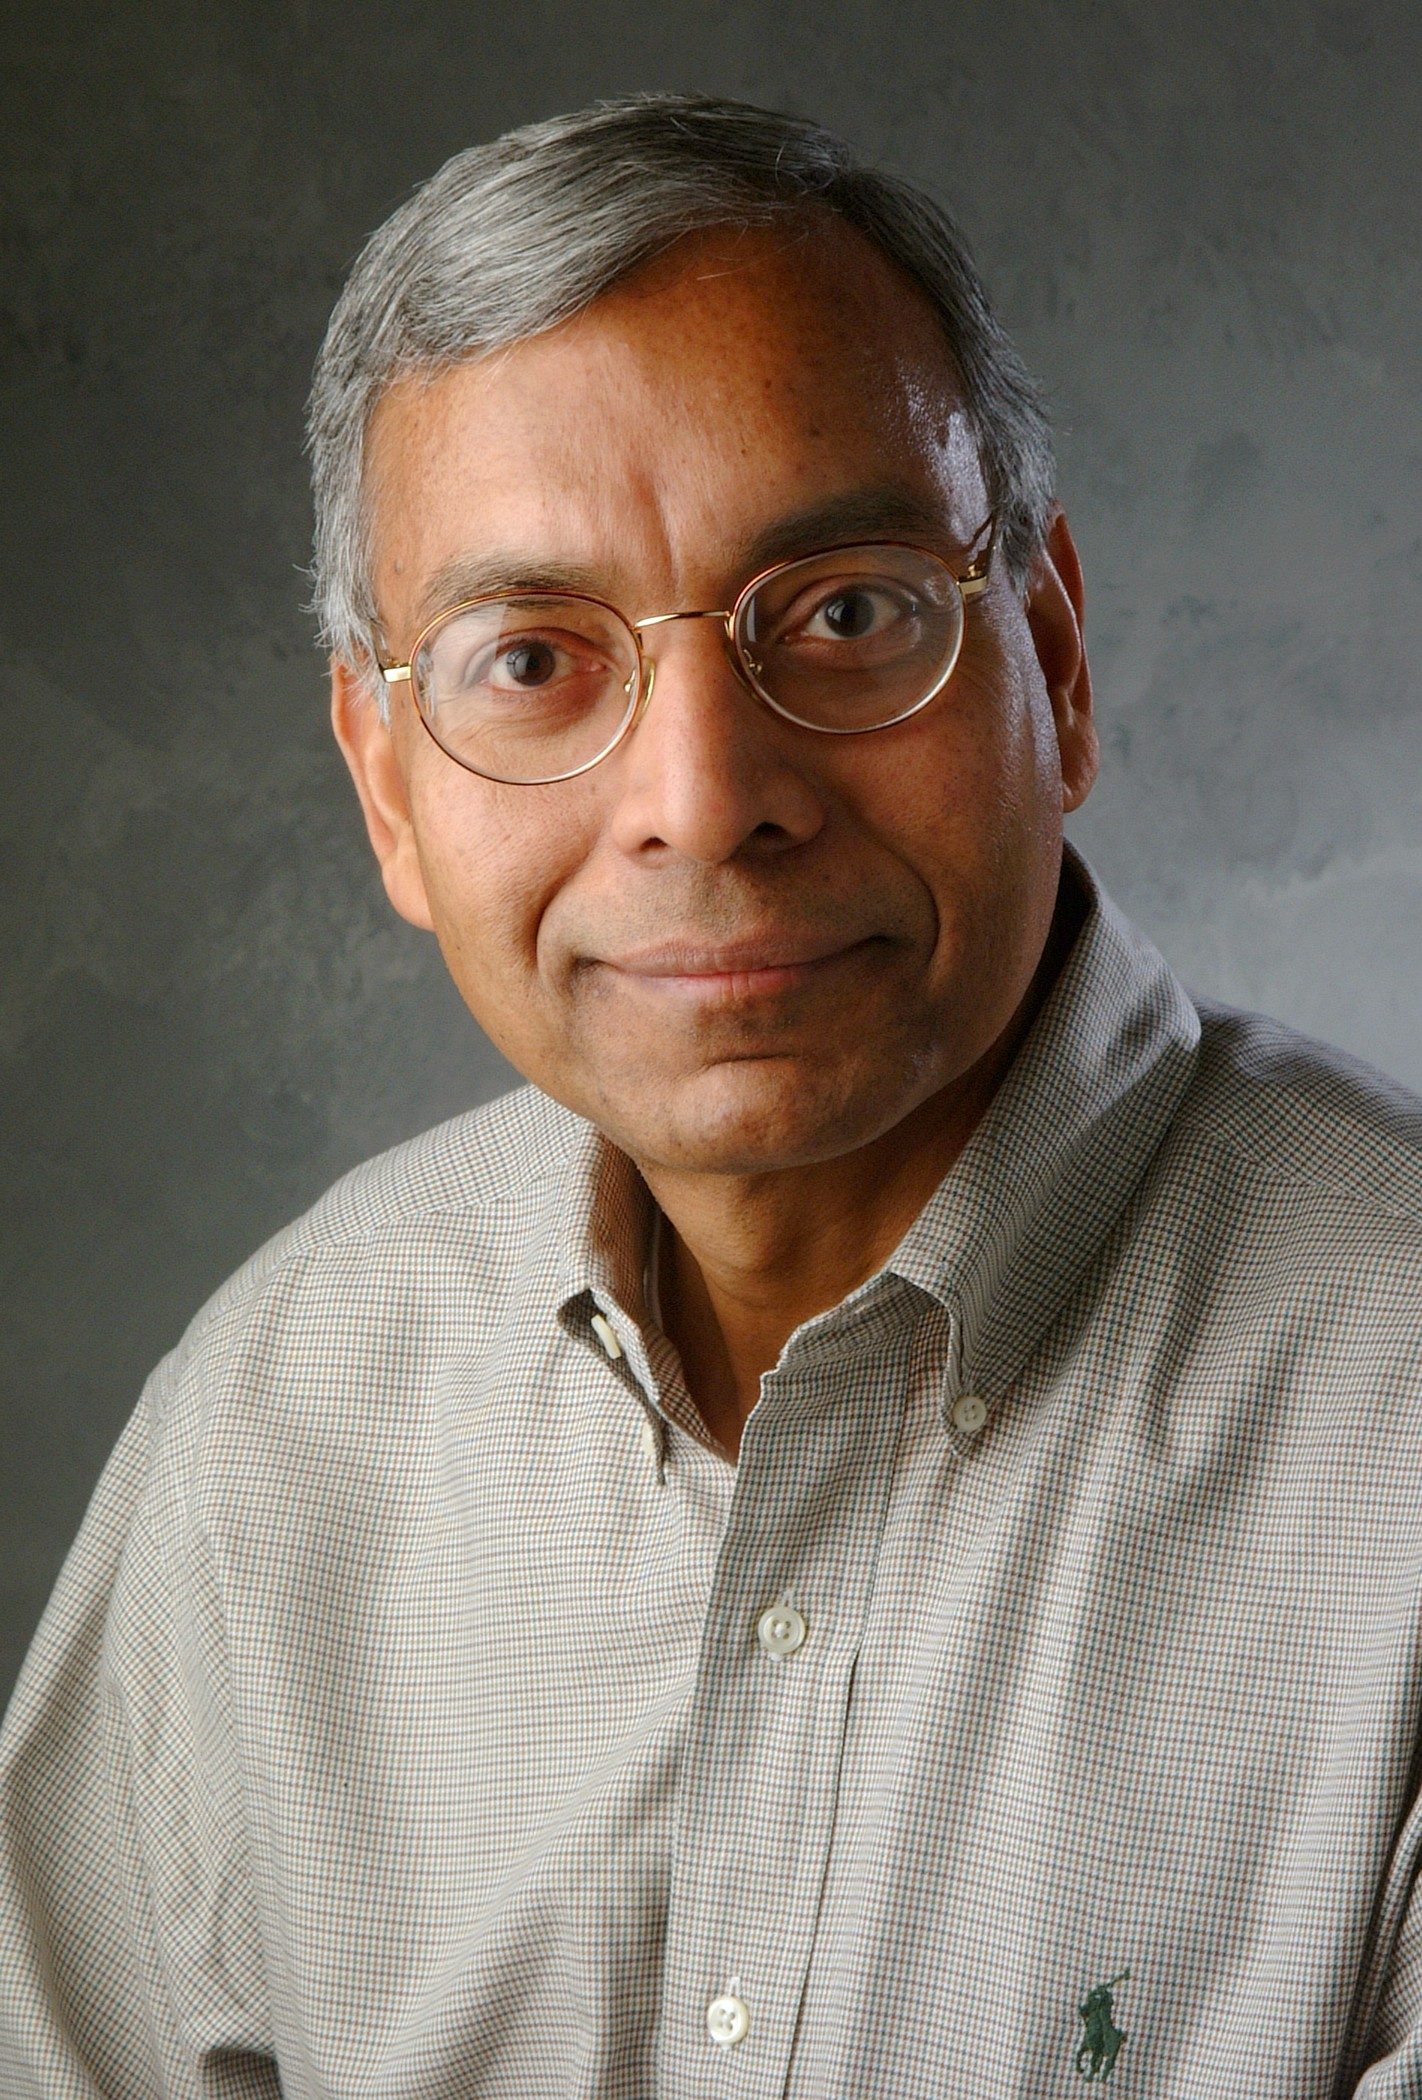 University Distinguished Professor of Computer Science and Engineering Anil Jain has been elected to the National Academy of Engineering - one of the highest professional distinctions accorded to an engineer.